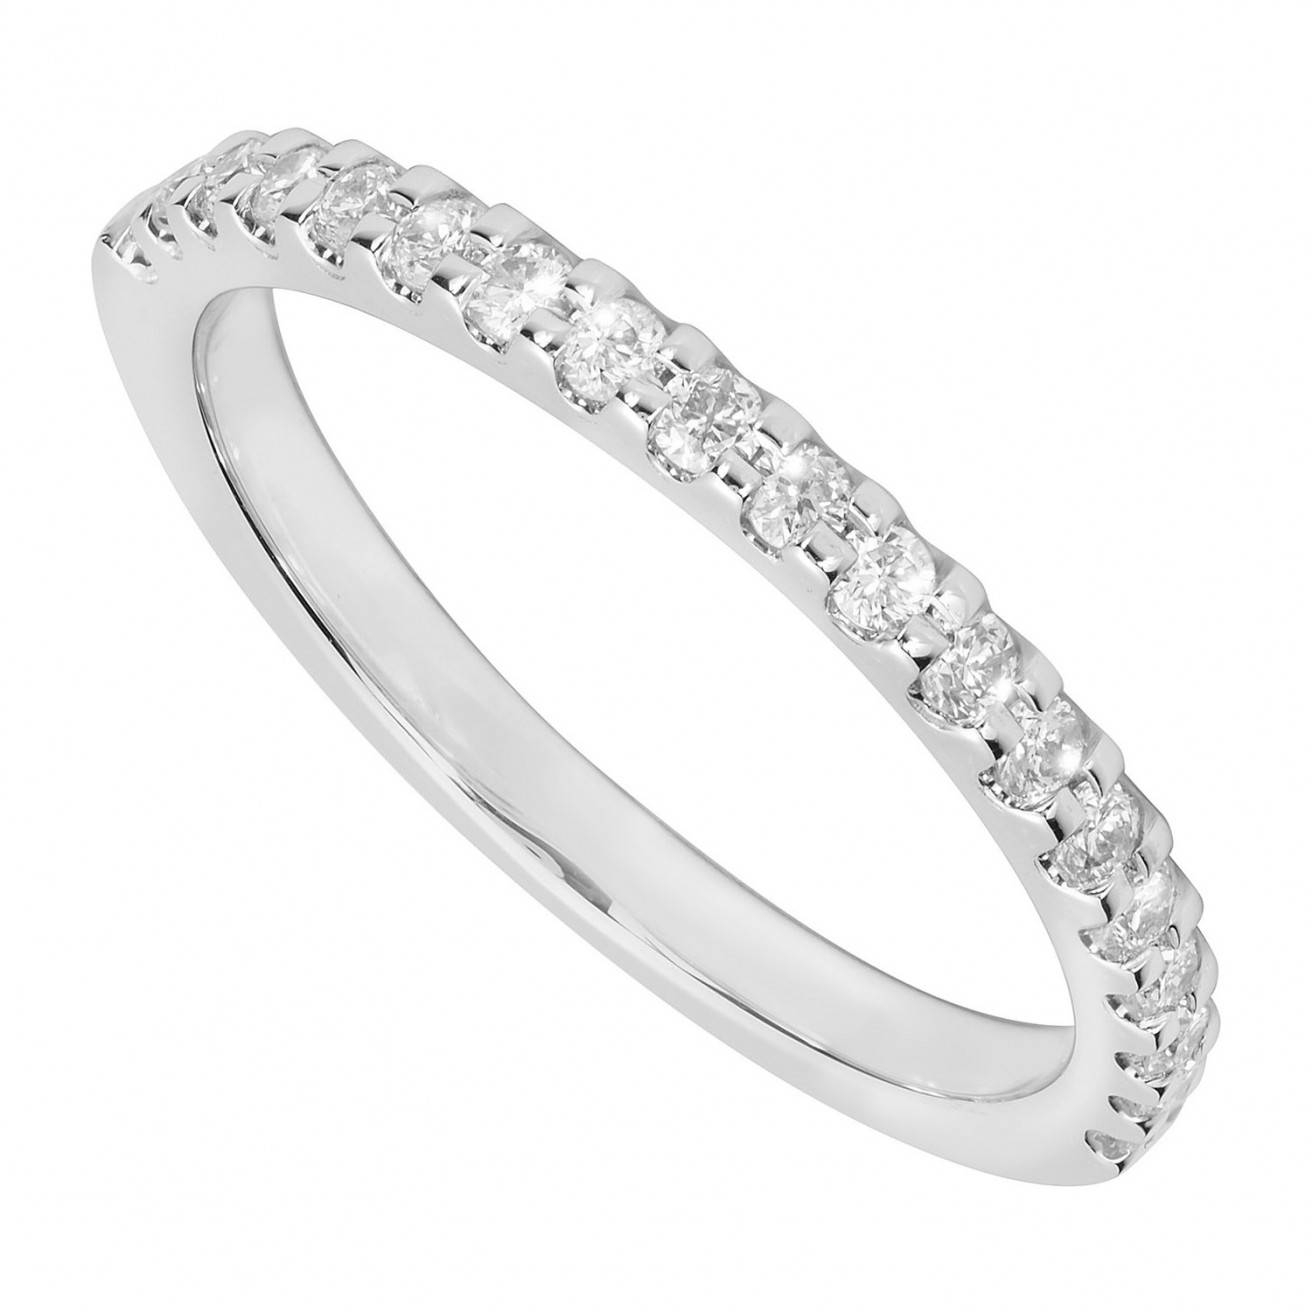 Beautifully Crafted Wedding Rings For Him And Her Inside Diamonds Wedding Rings (View 5 of 15)